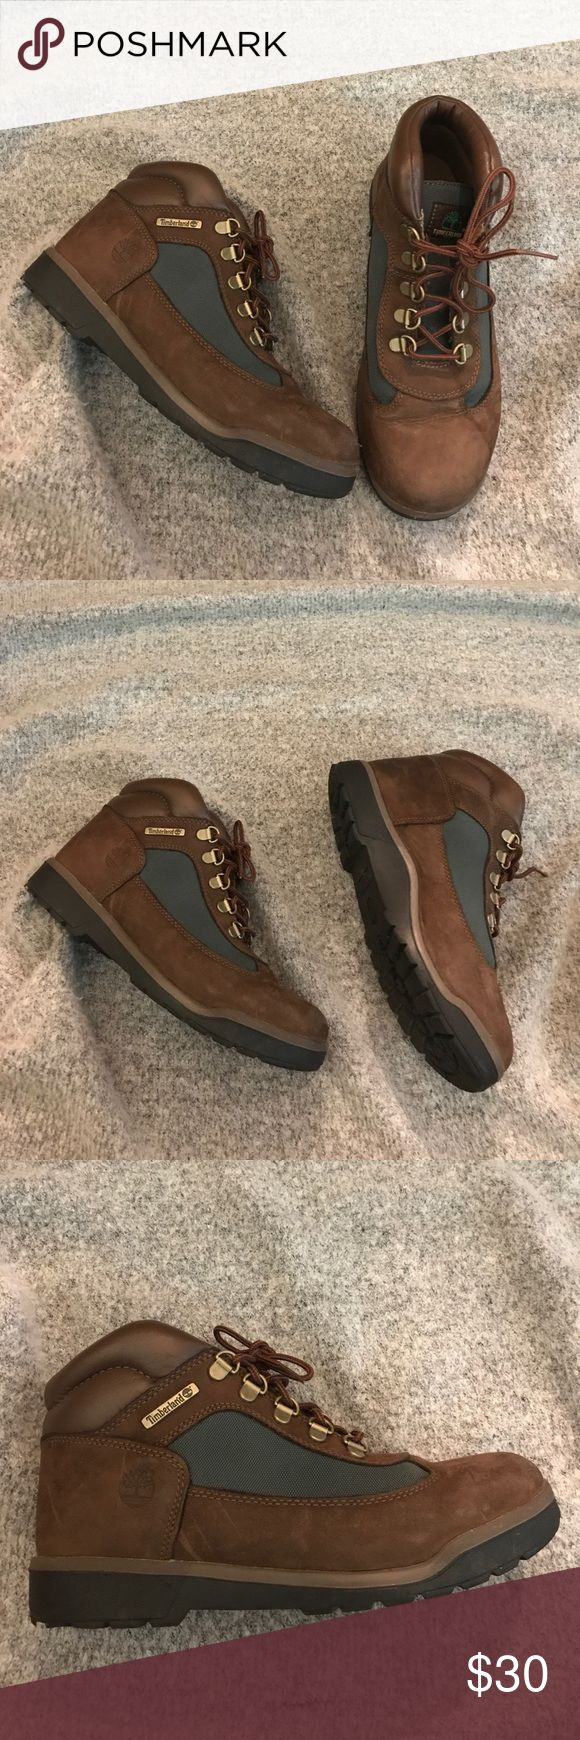 Timberland Boots Green / Brown Timberland boot is perfect for any hiking , biking and even casual wear. Very comfortable & worn in. Timberland Shoes Winter & Rain Boots